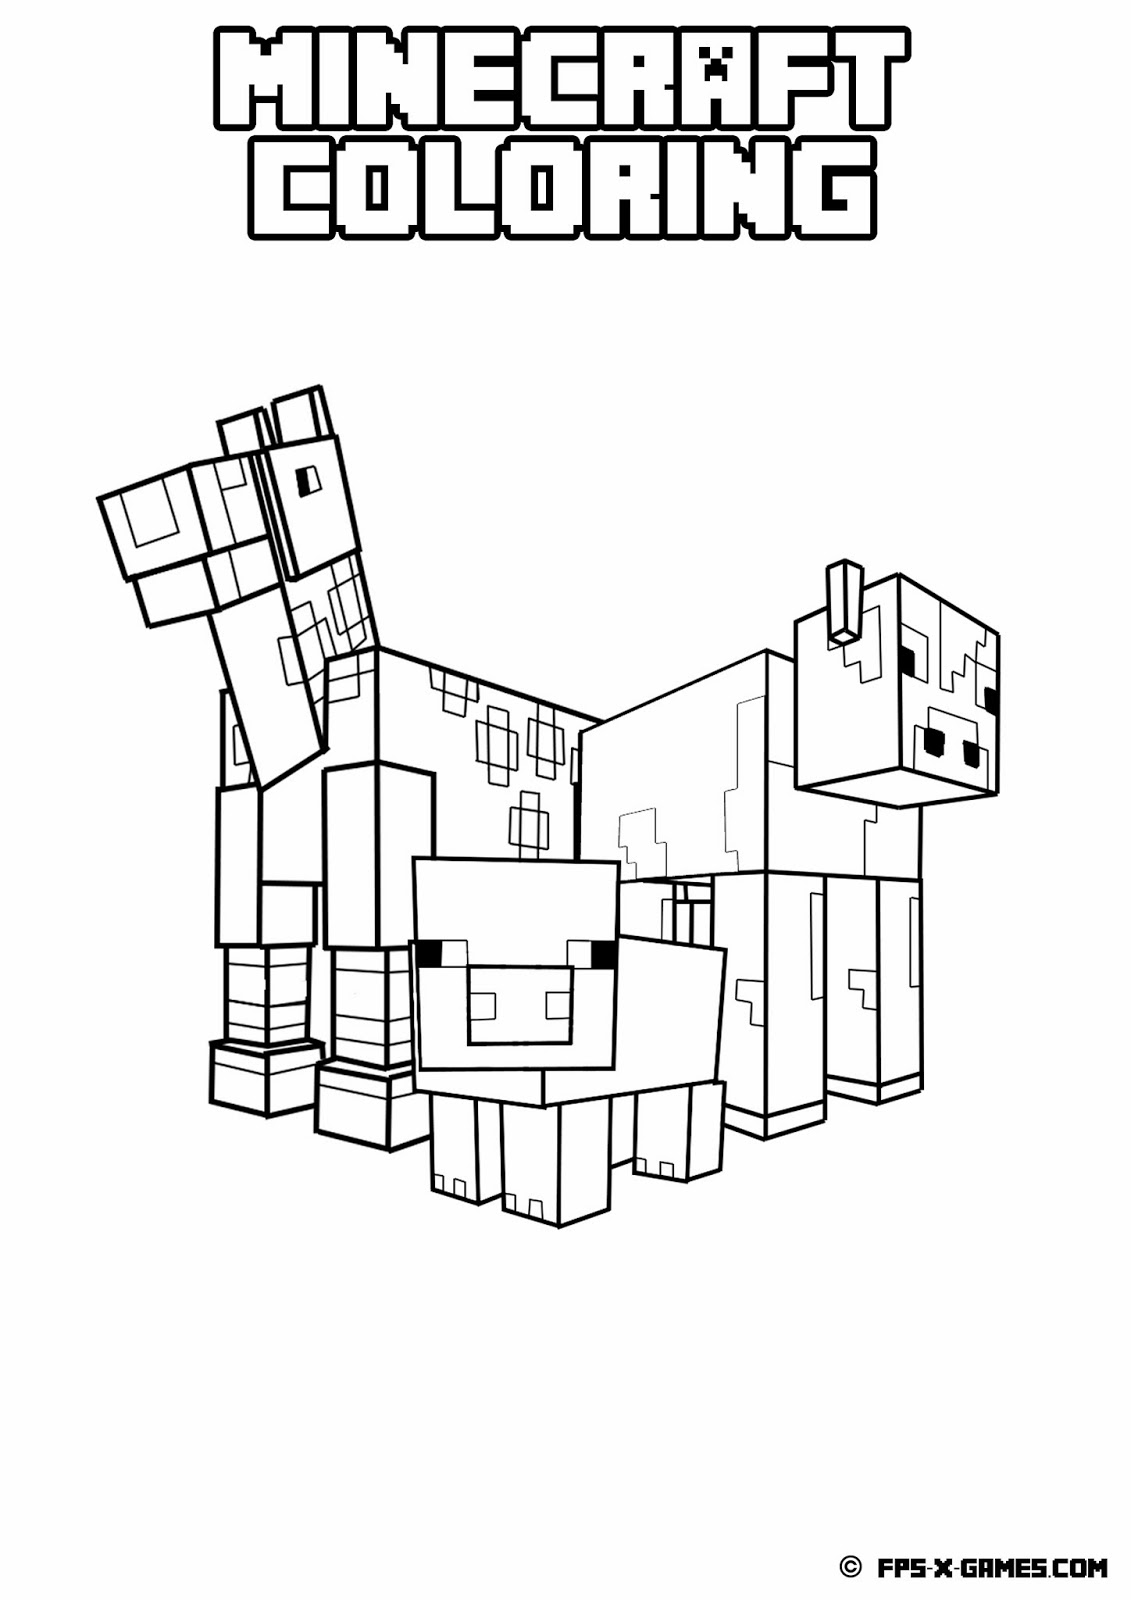 minecraft coloring and coloring pages on pinterest. Black Bedroom Furniture Sets. Home Design Ideas